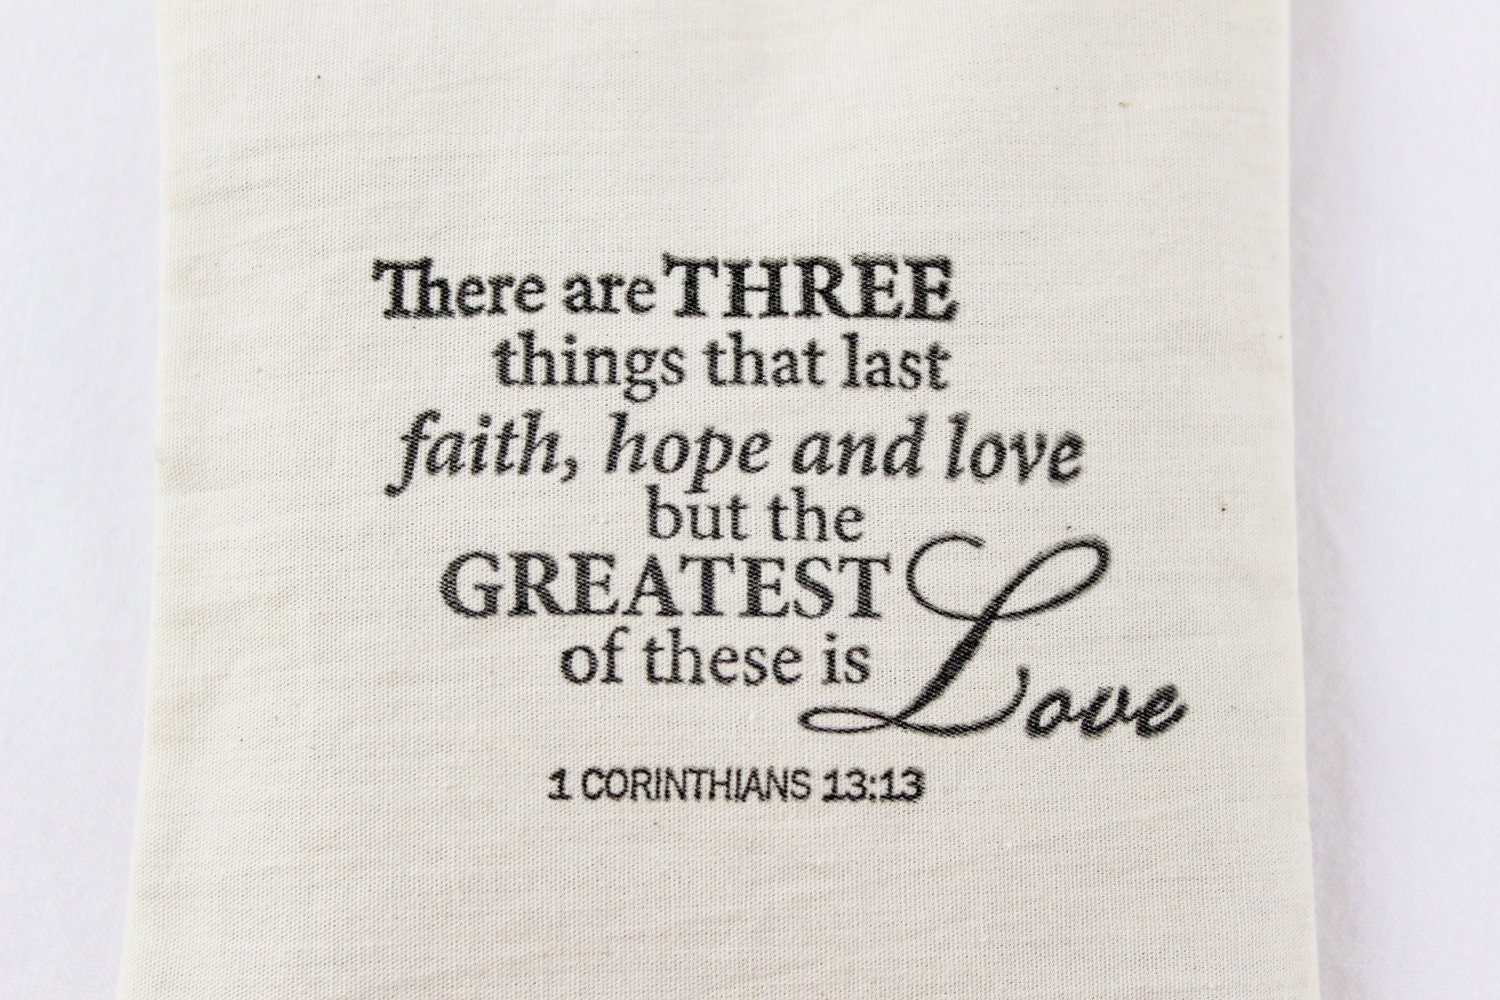 Bible Quotes On Love And Marriage Faith Hope Love Lavender Sachet 1 Corinthians 13 Bible Verse